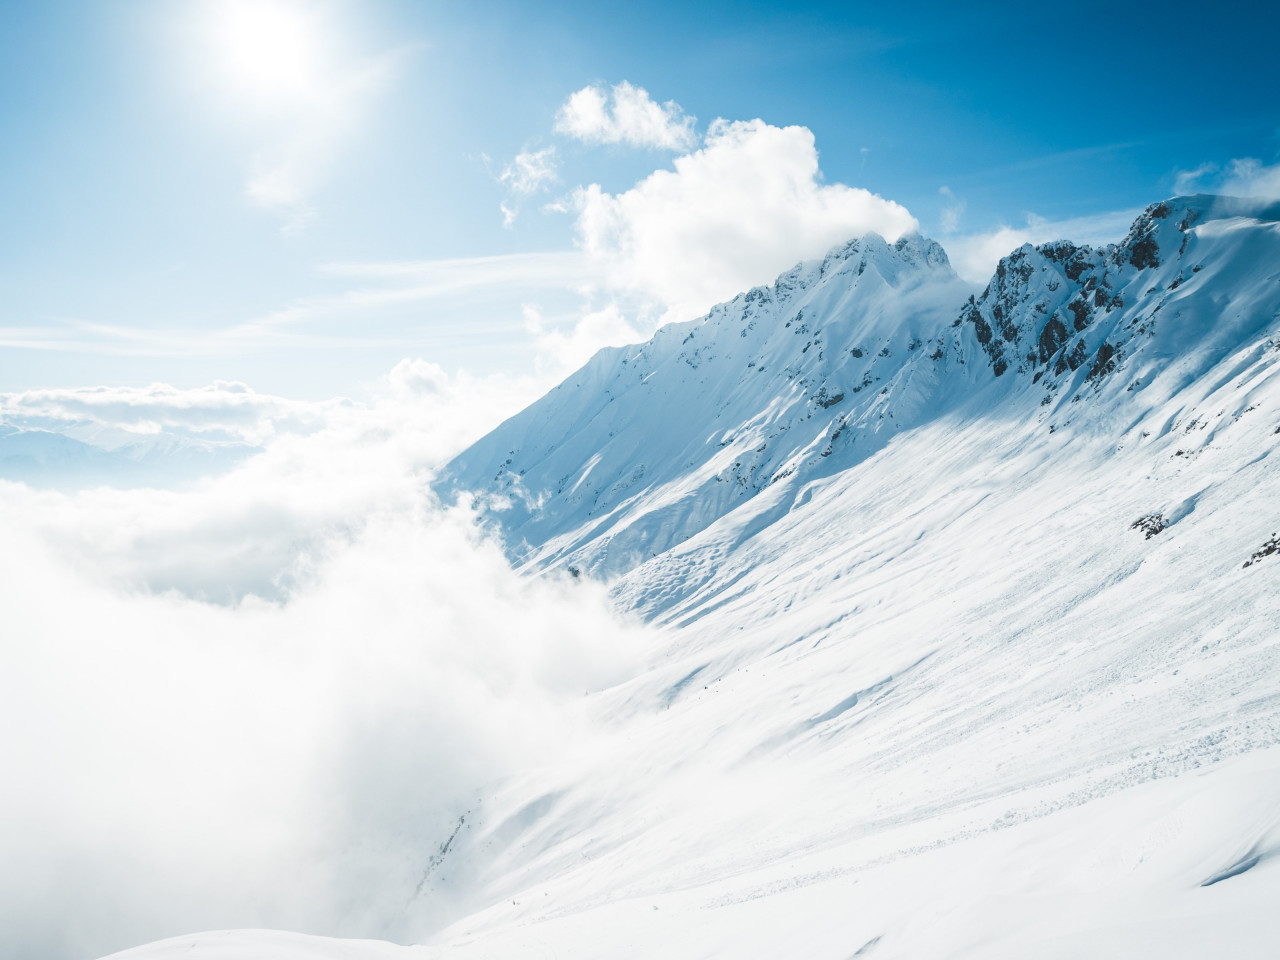 Mountains full of snow and blue sky wallpaper 1280x960